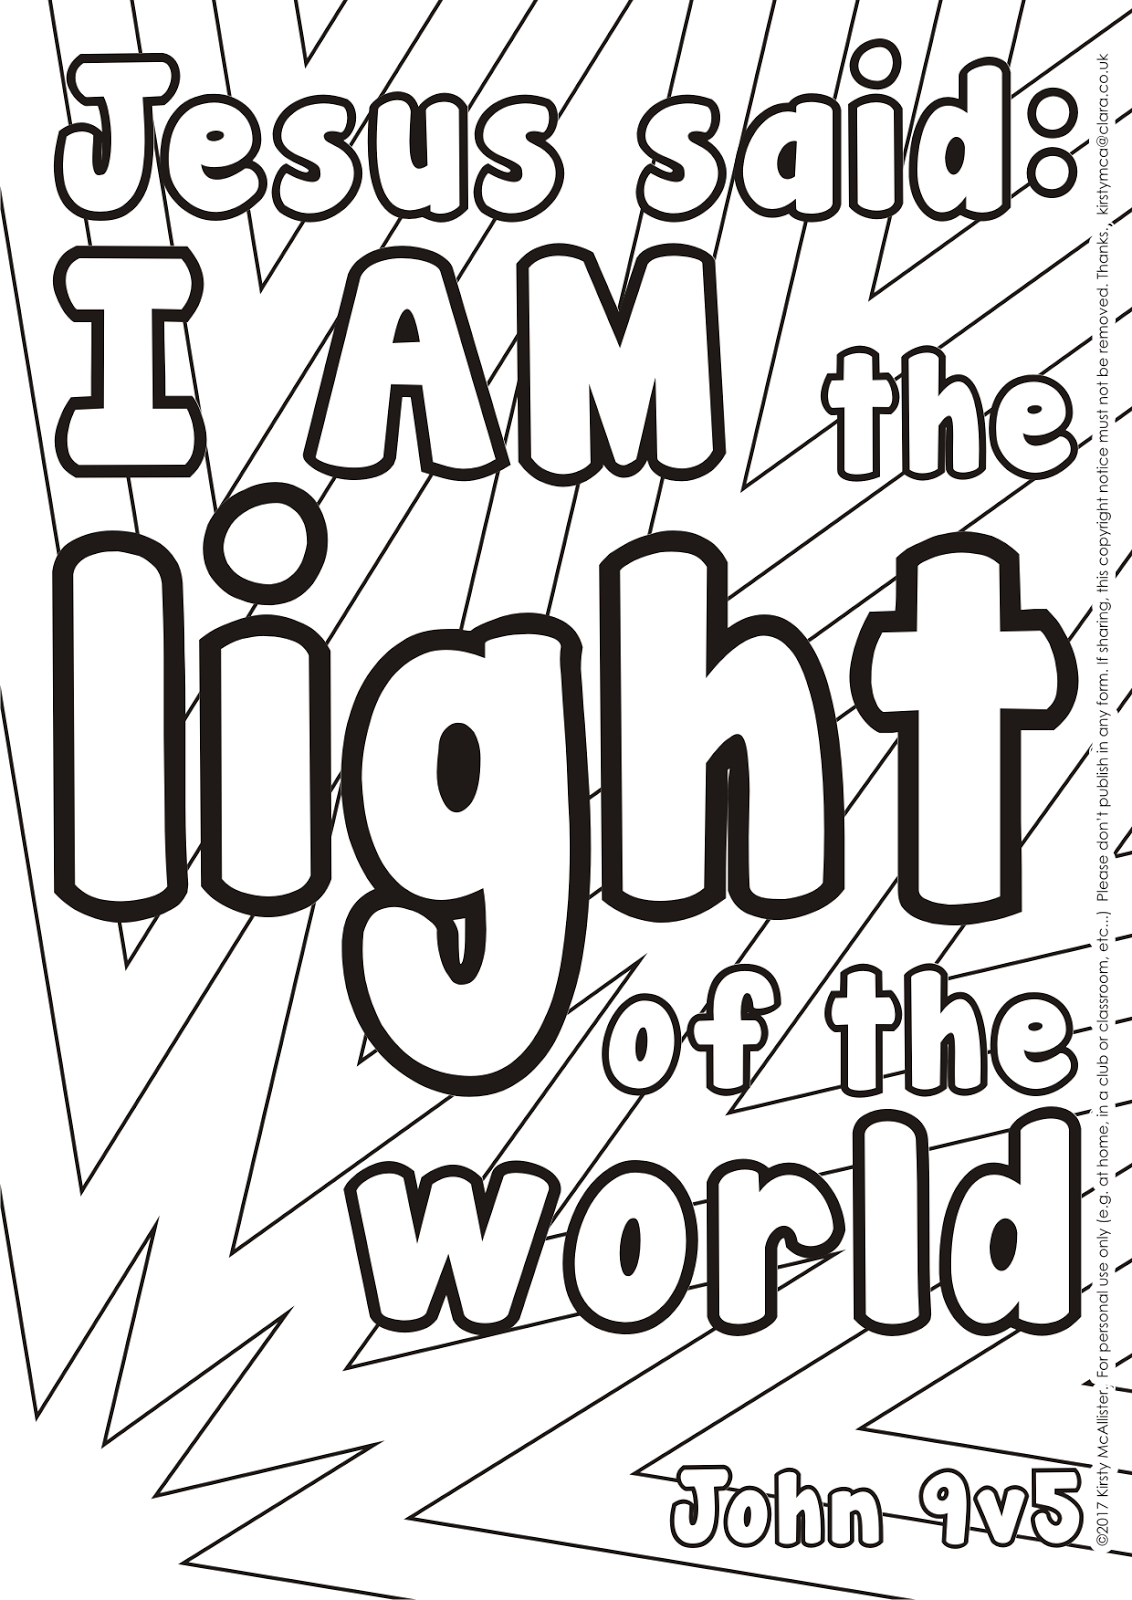 Jesus said I am the light of the world colouring picture ...